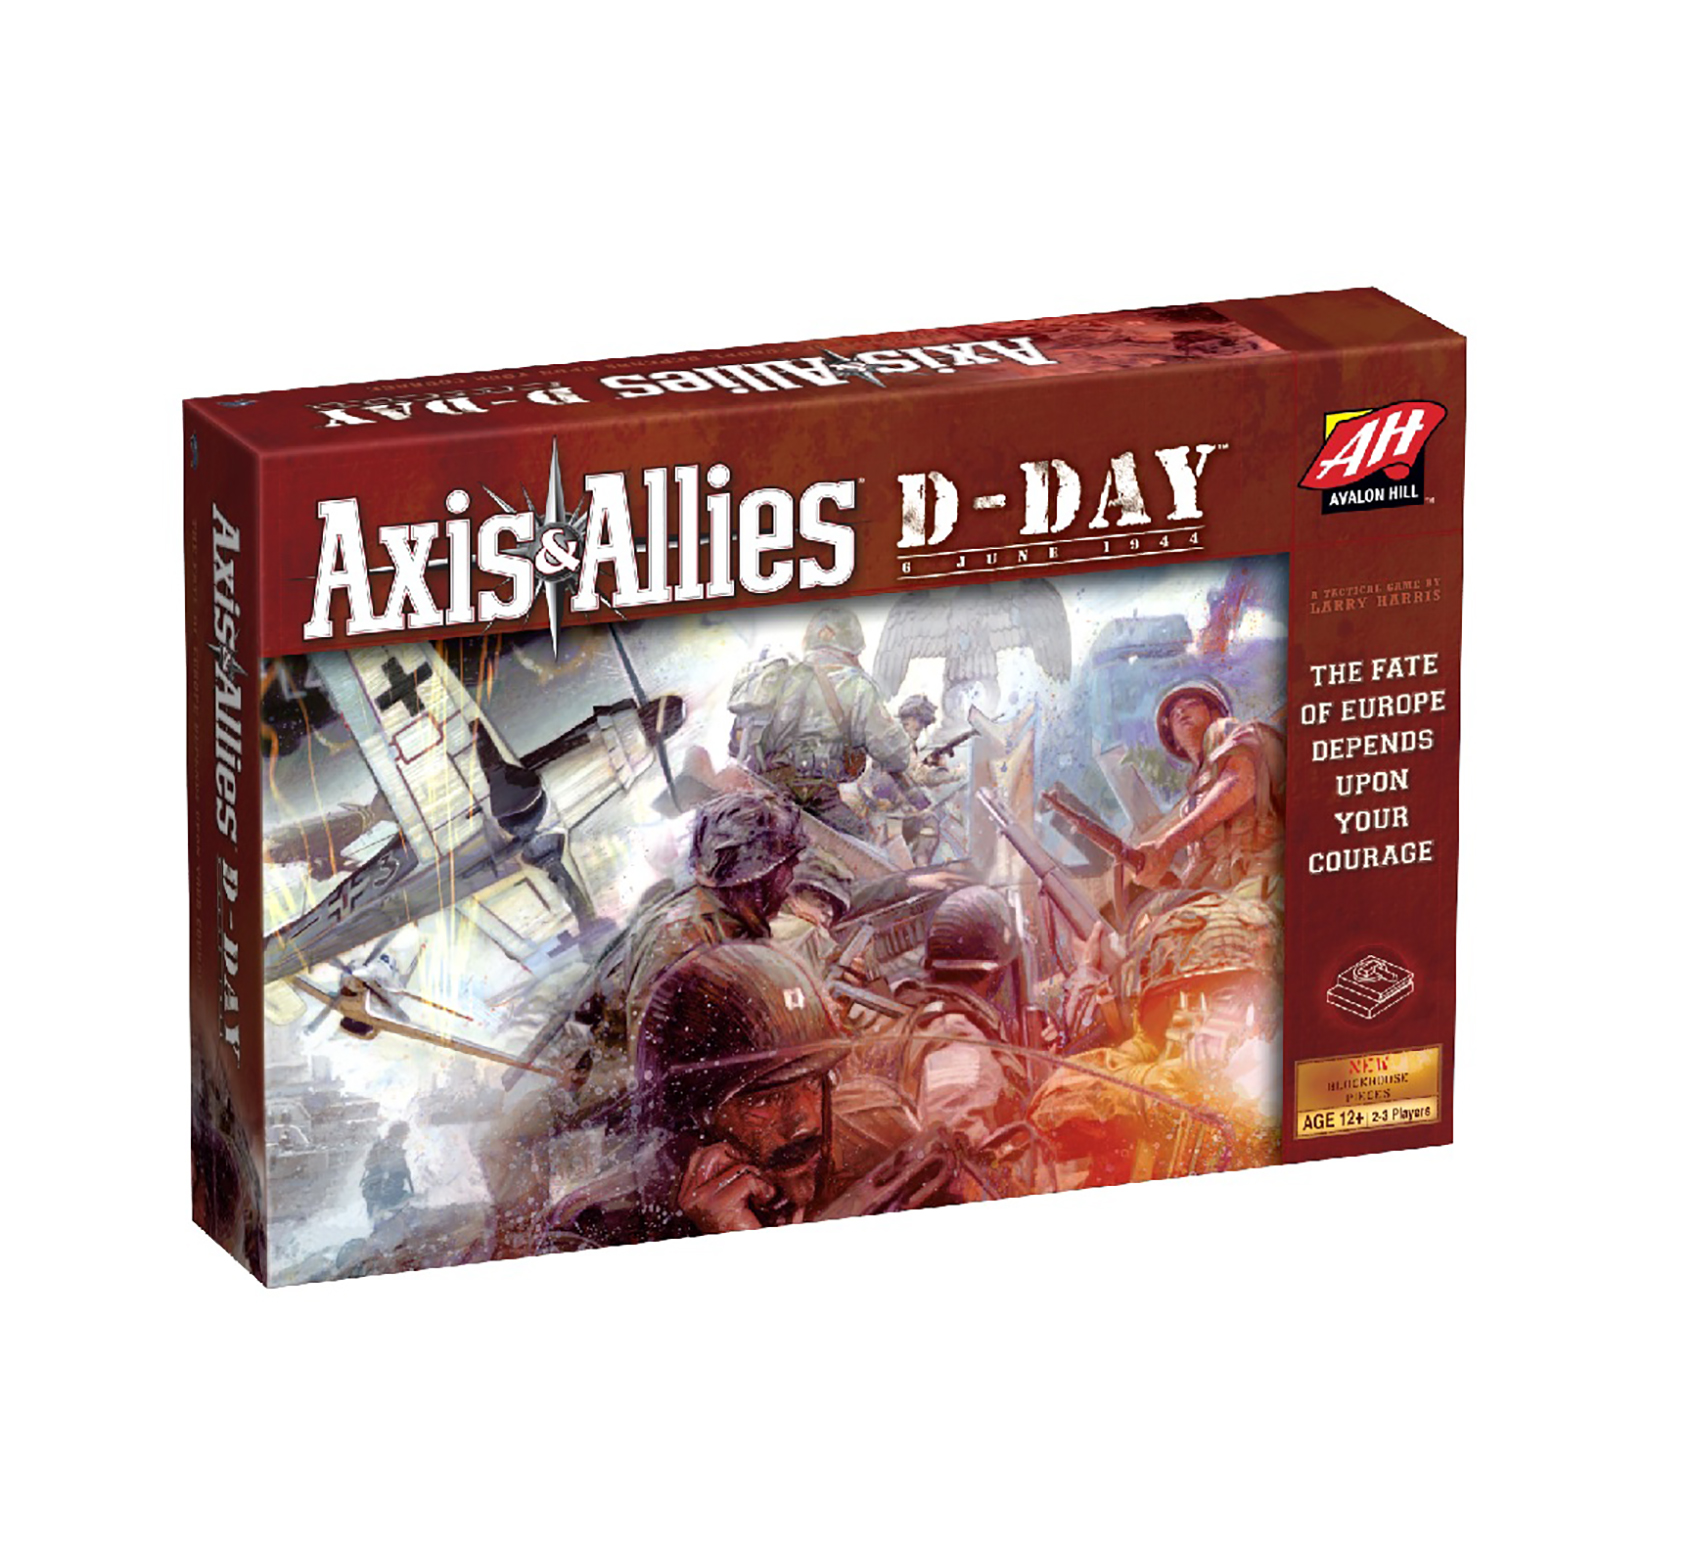 Wizards of the Coast Axis & Allies D-Day Board Game by Wizards of the Coast